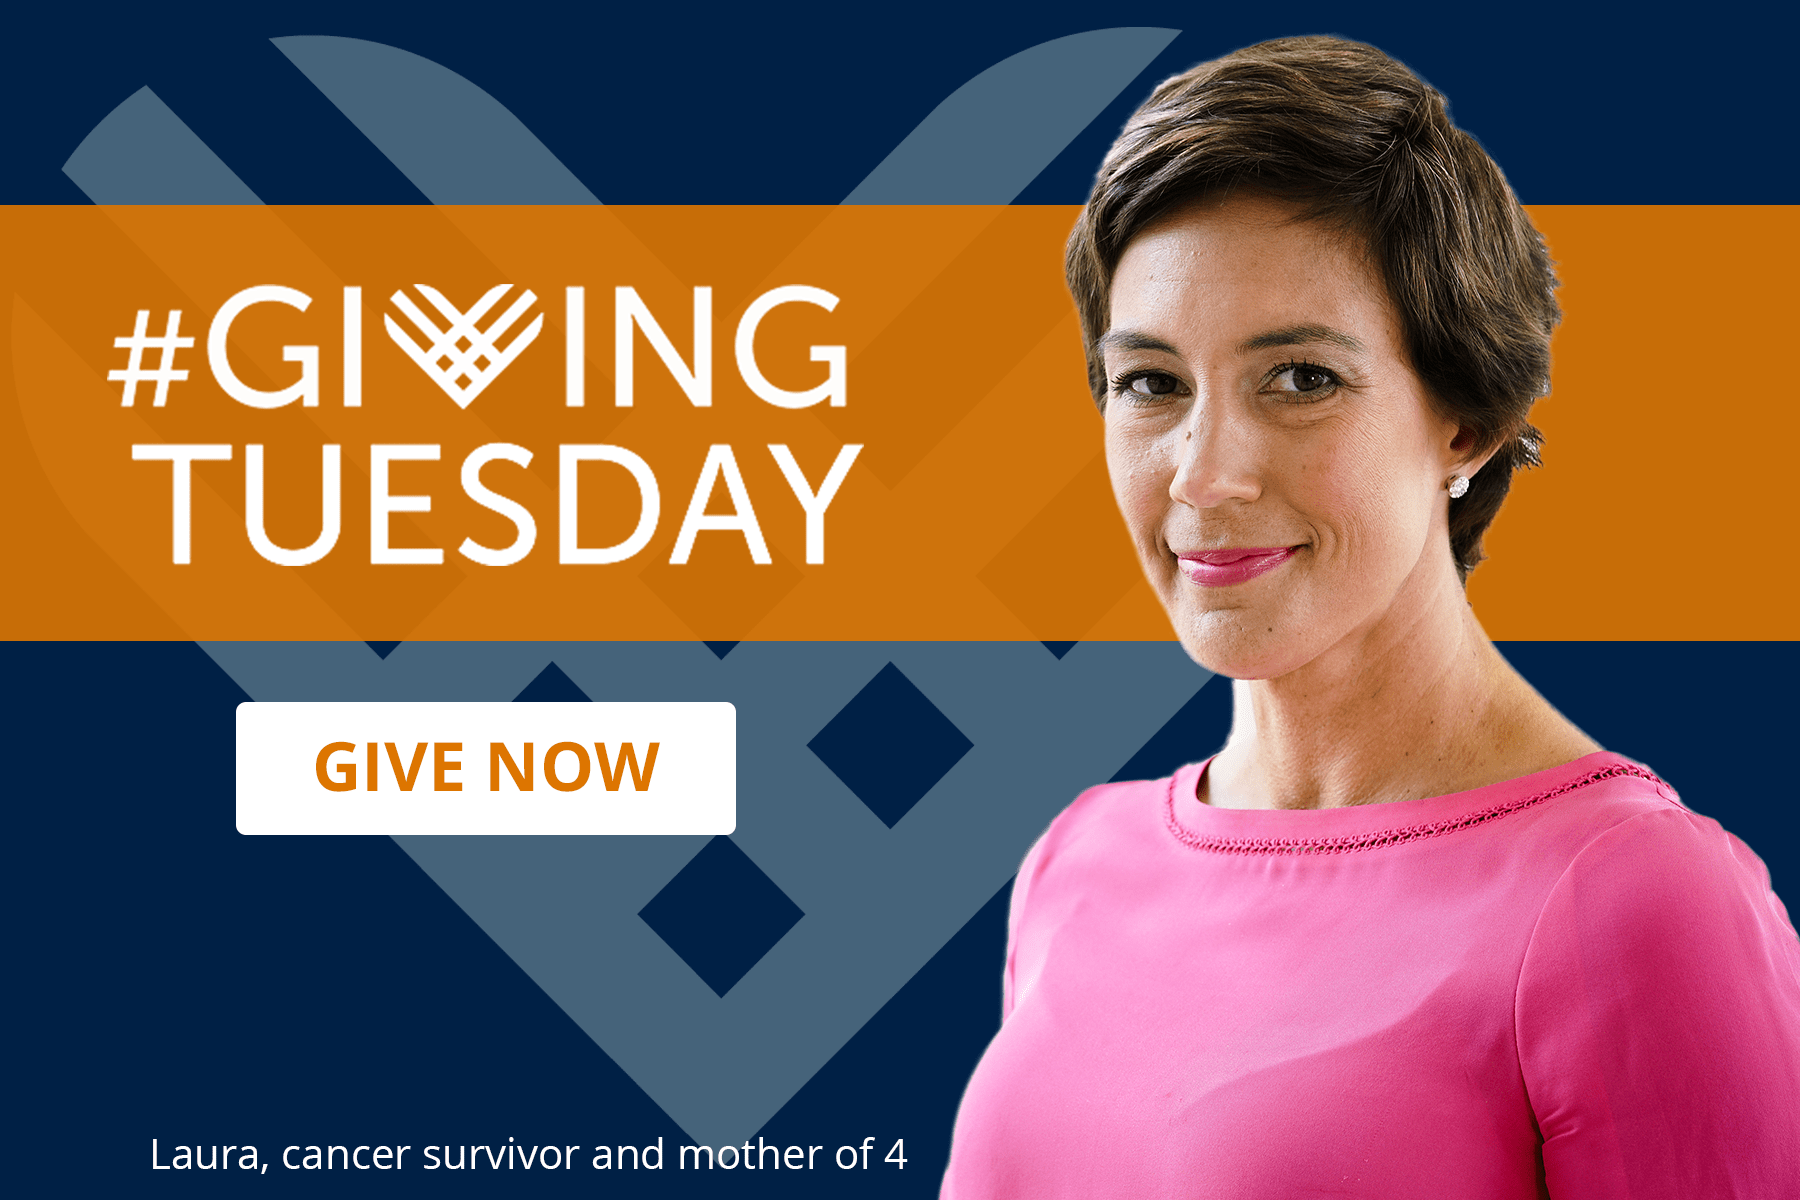 5 Ways to Boost Your Fundraising on Giving Tuesday